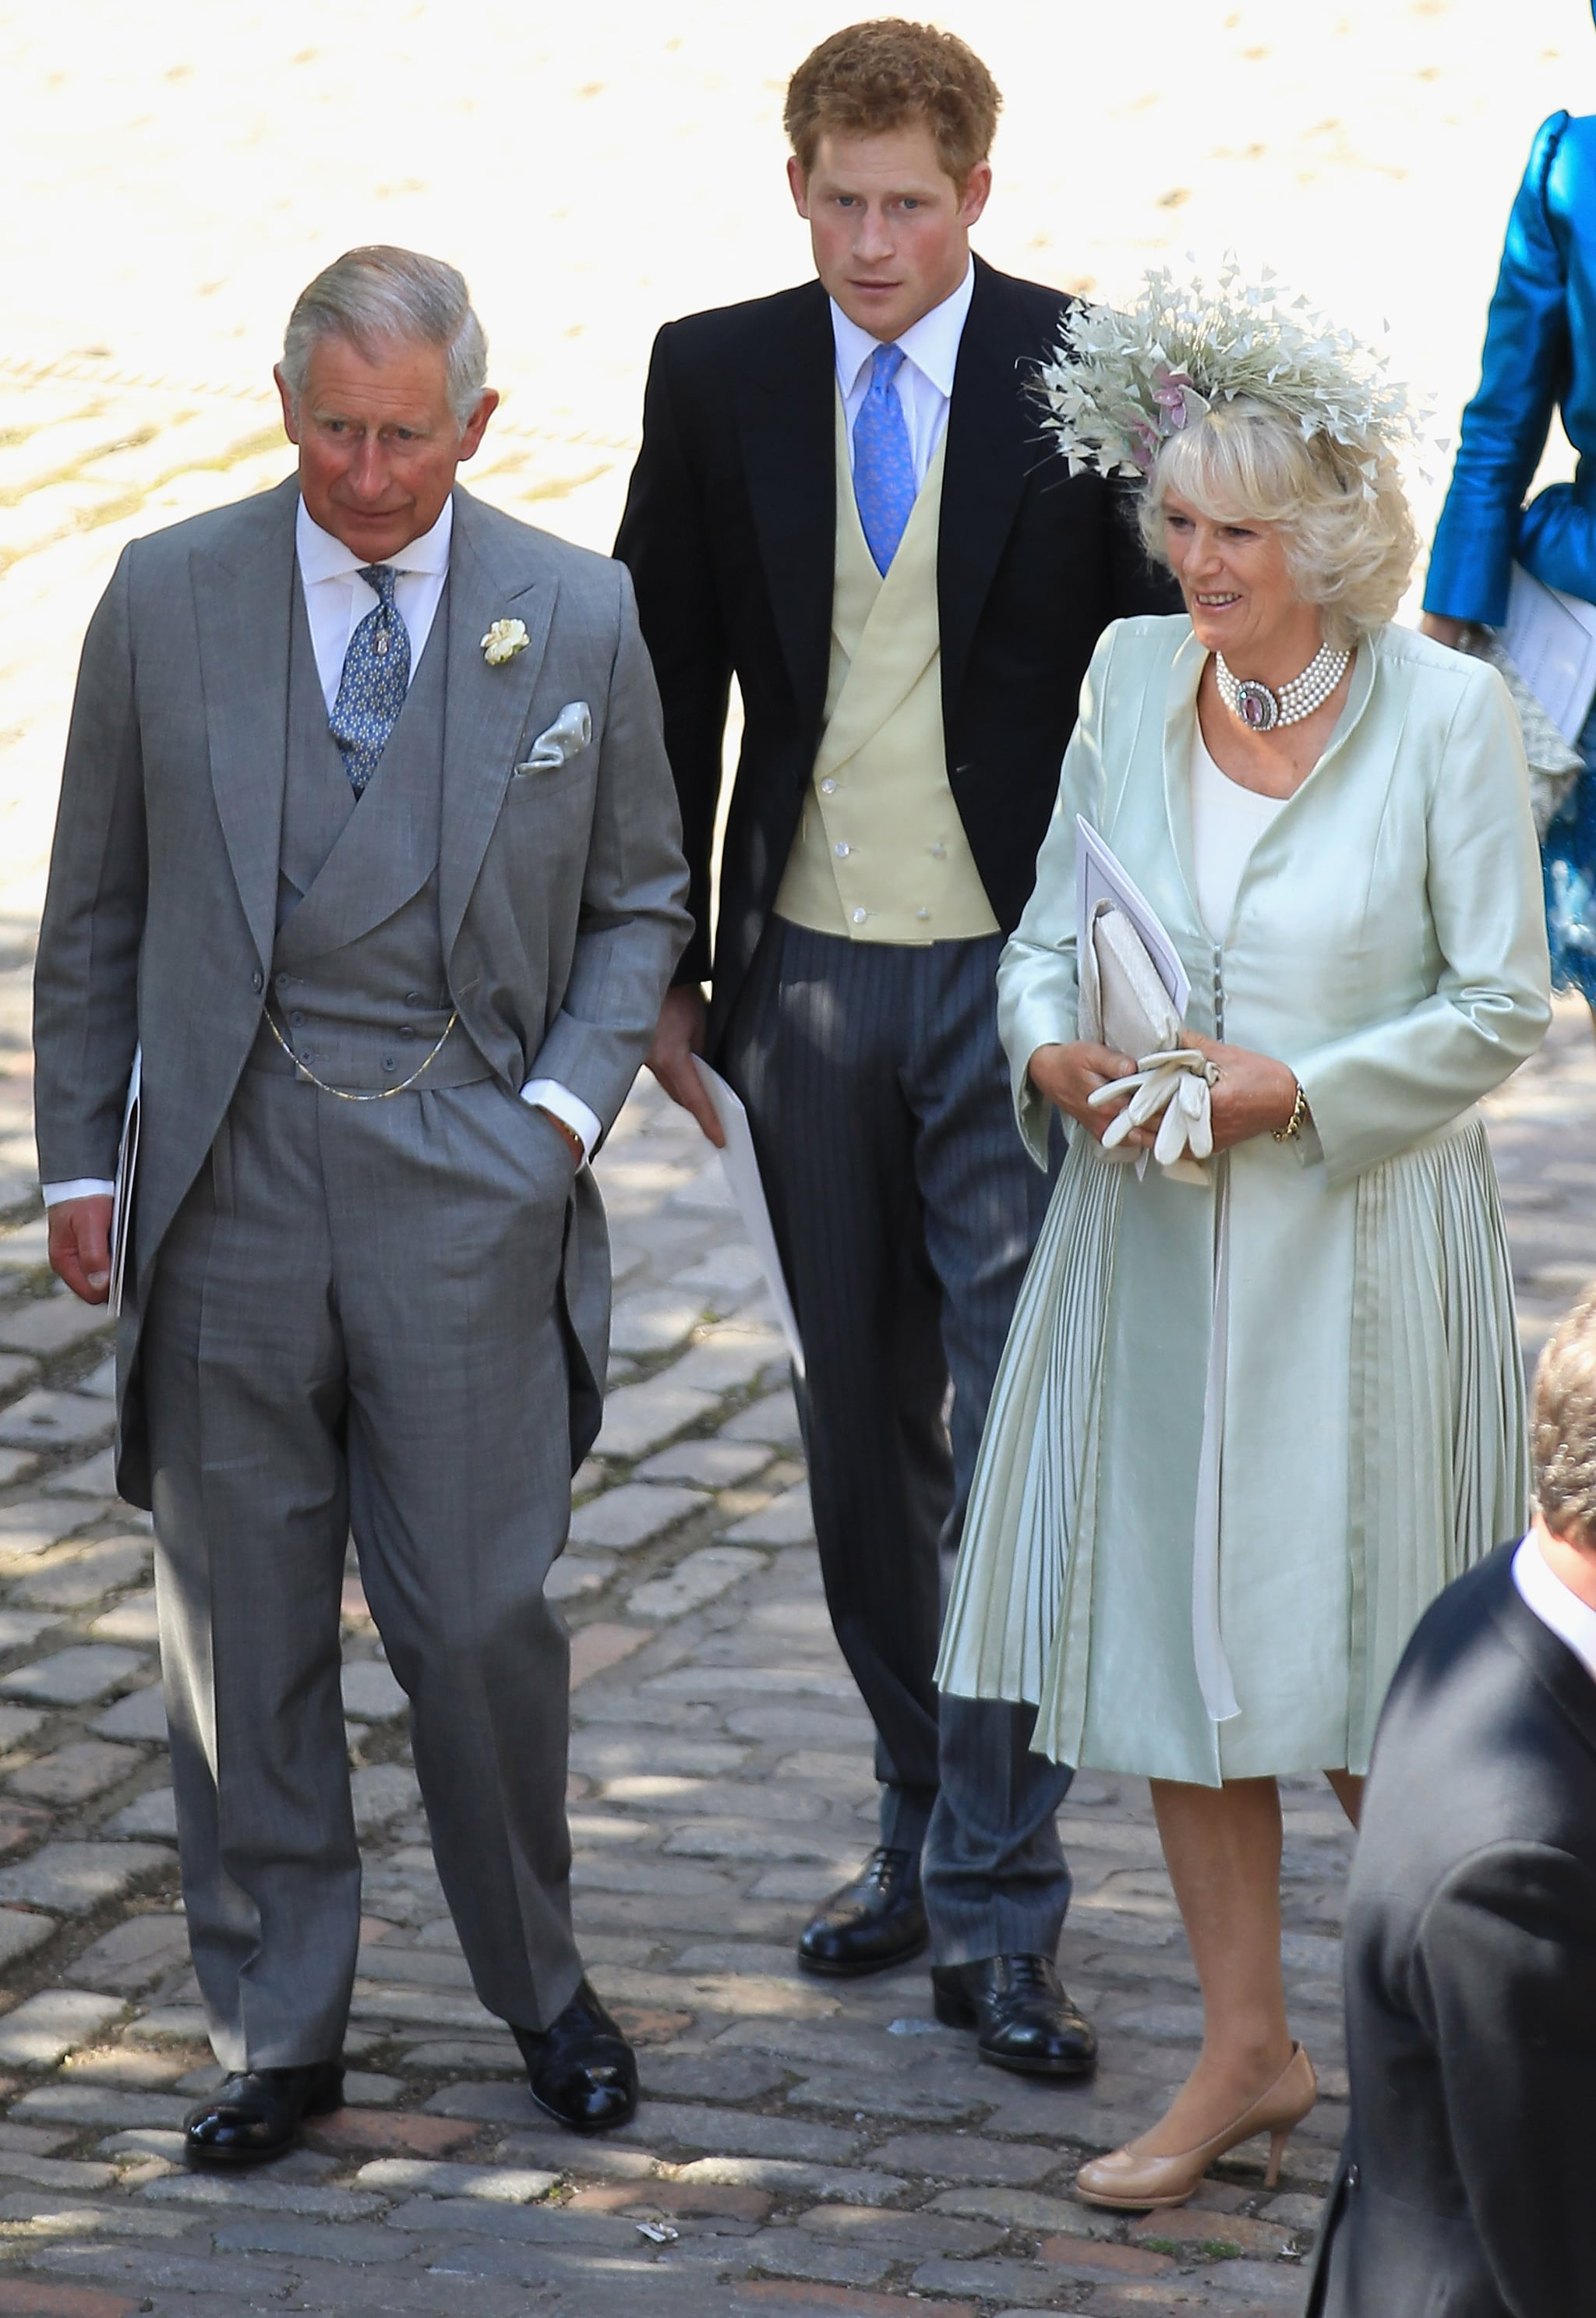 Prince Charles, Prince Harry and Camilla Duchess of Cornwall